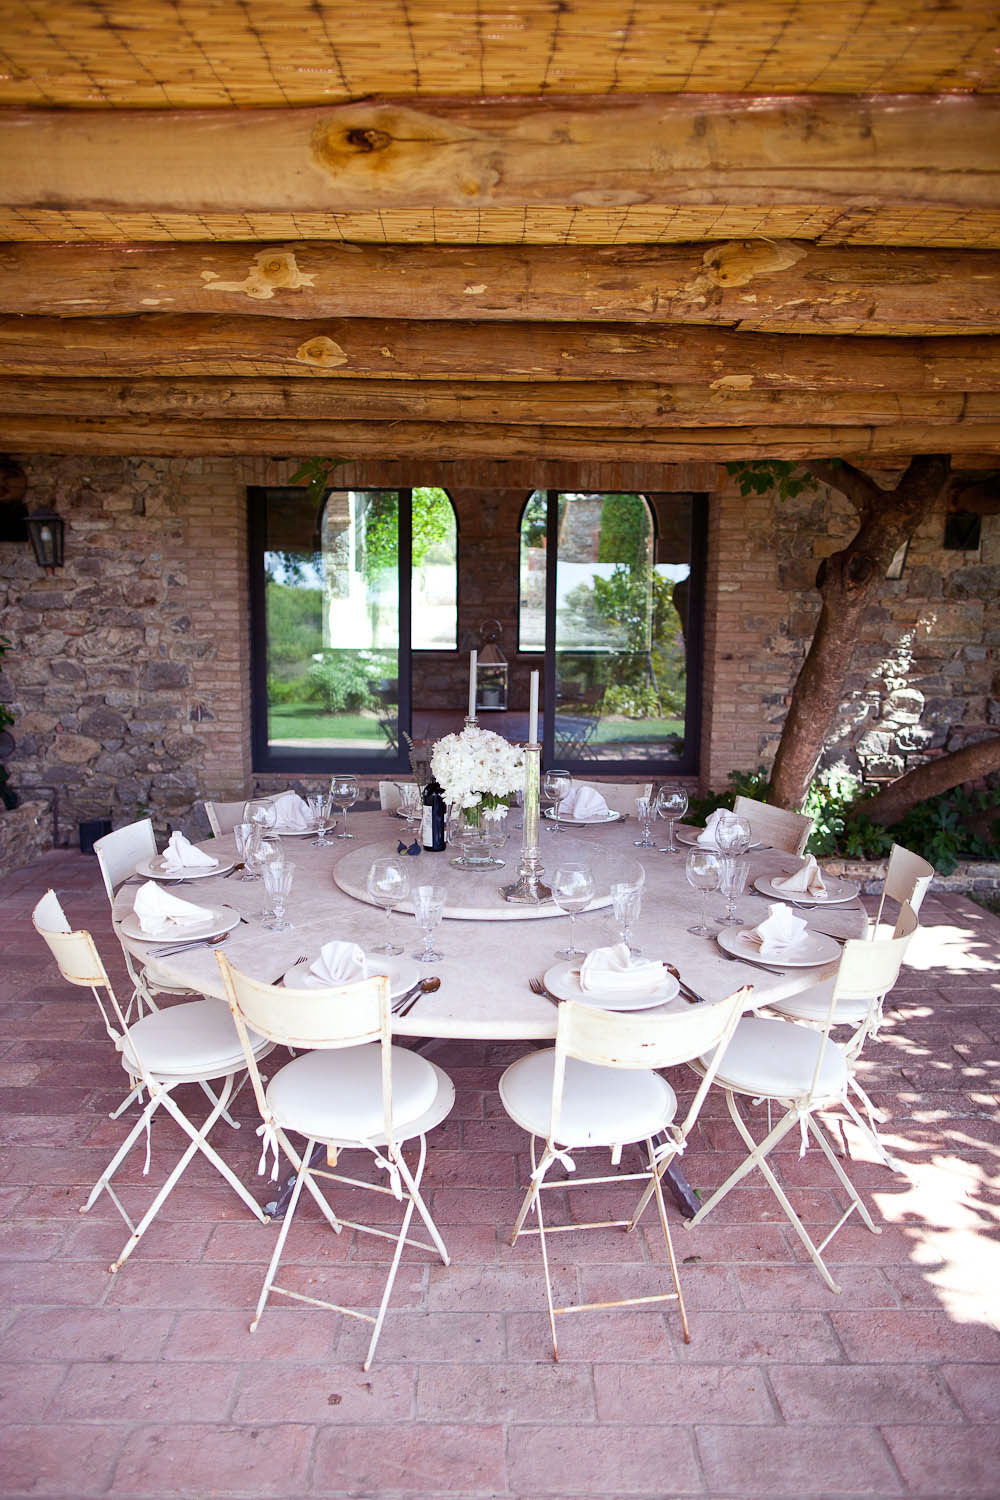 Outdoor Dining Room with White Table and Table Manner ...